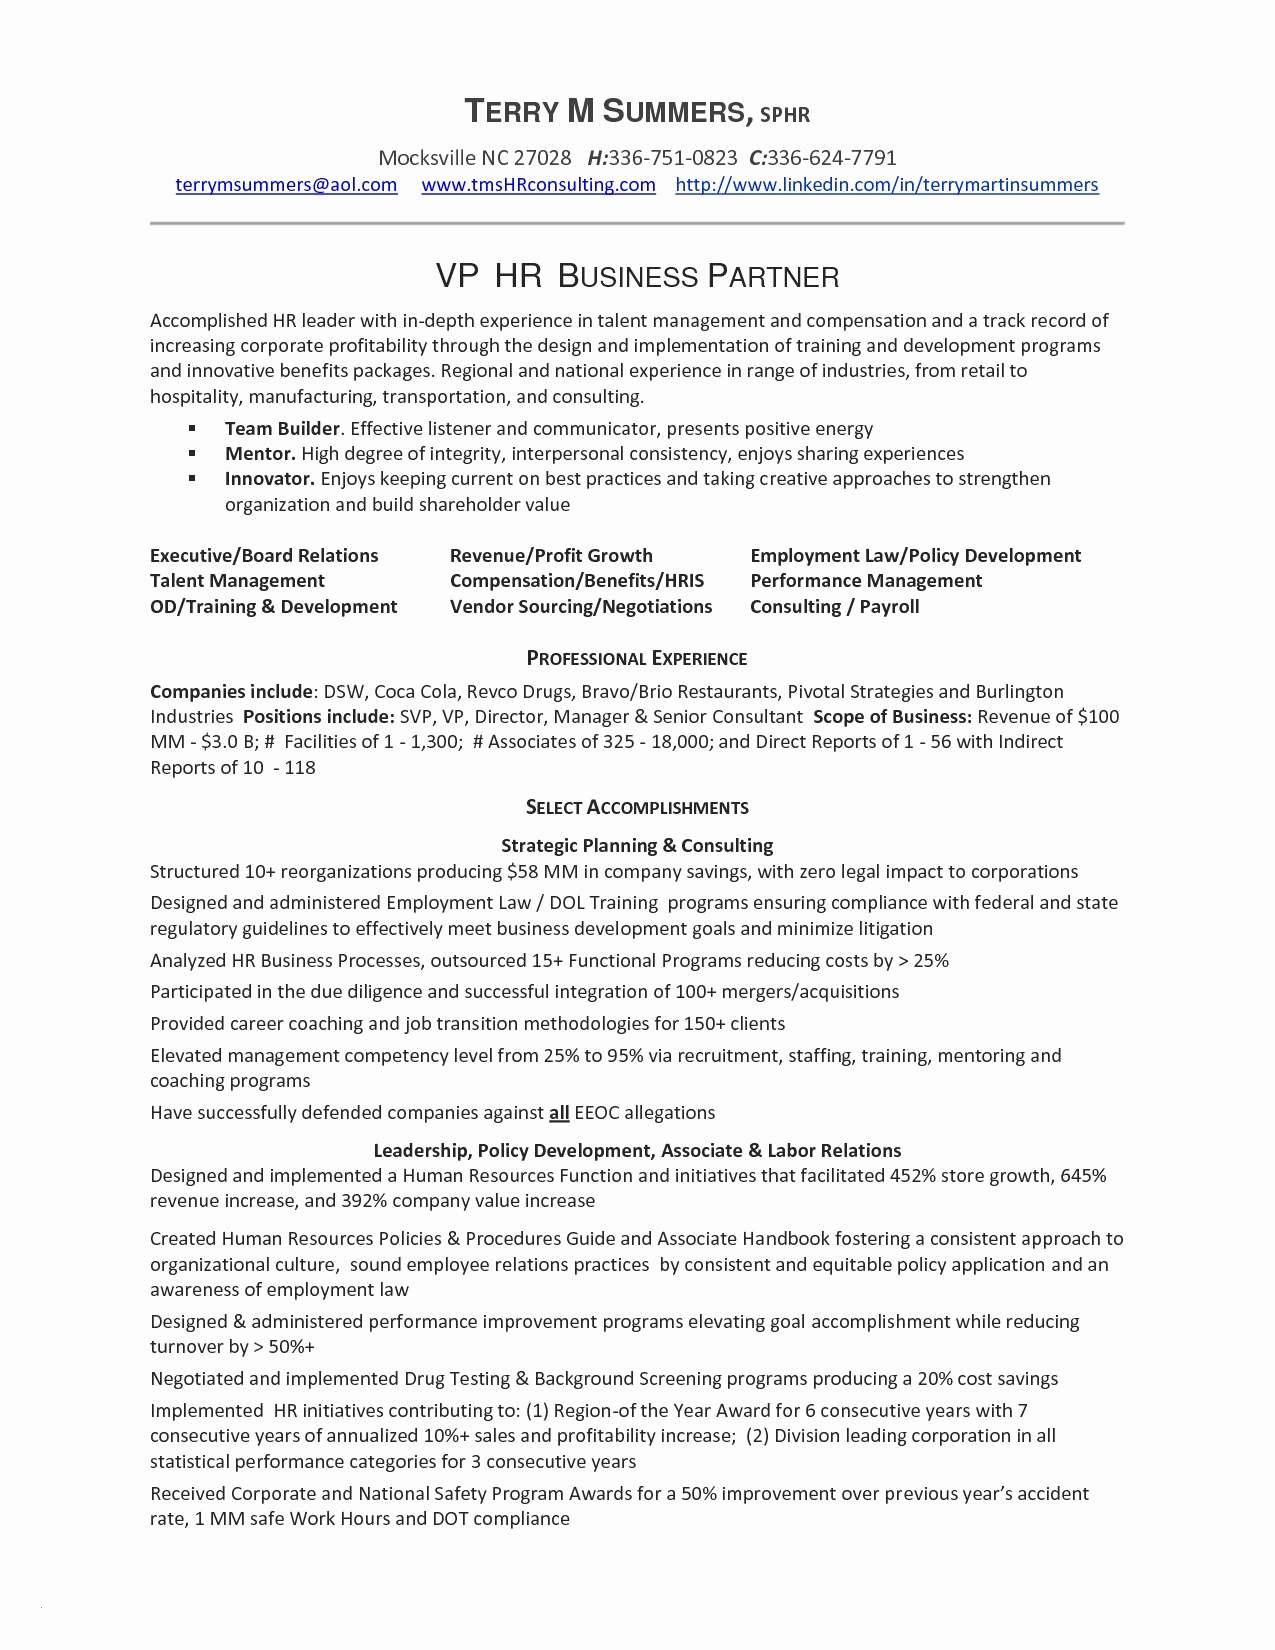 Consultant Resume Template - Consulting Resume Template Awesome Consulting Resume Template New